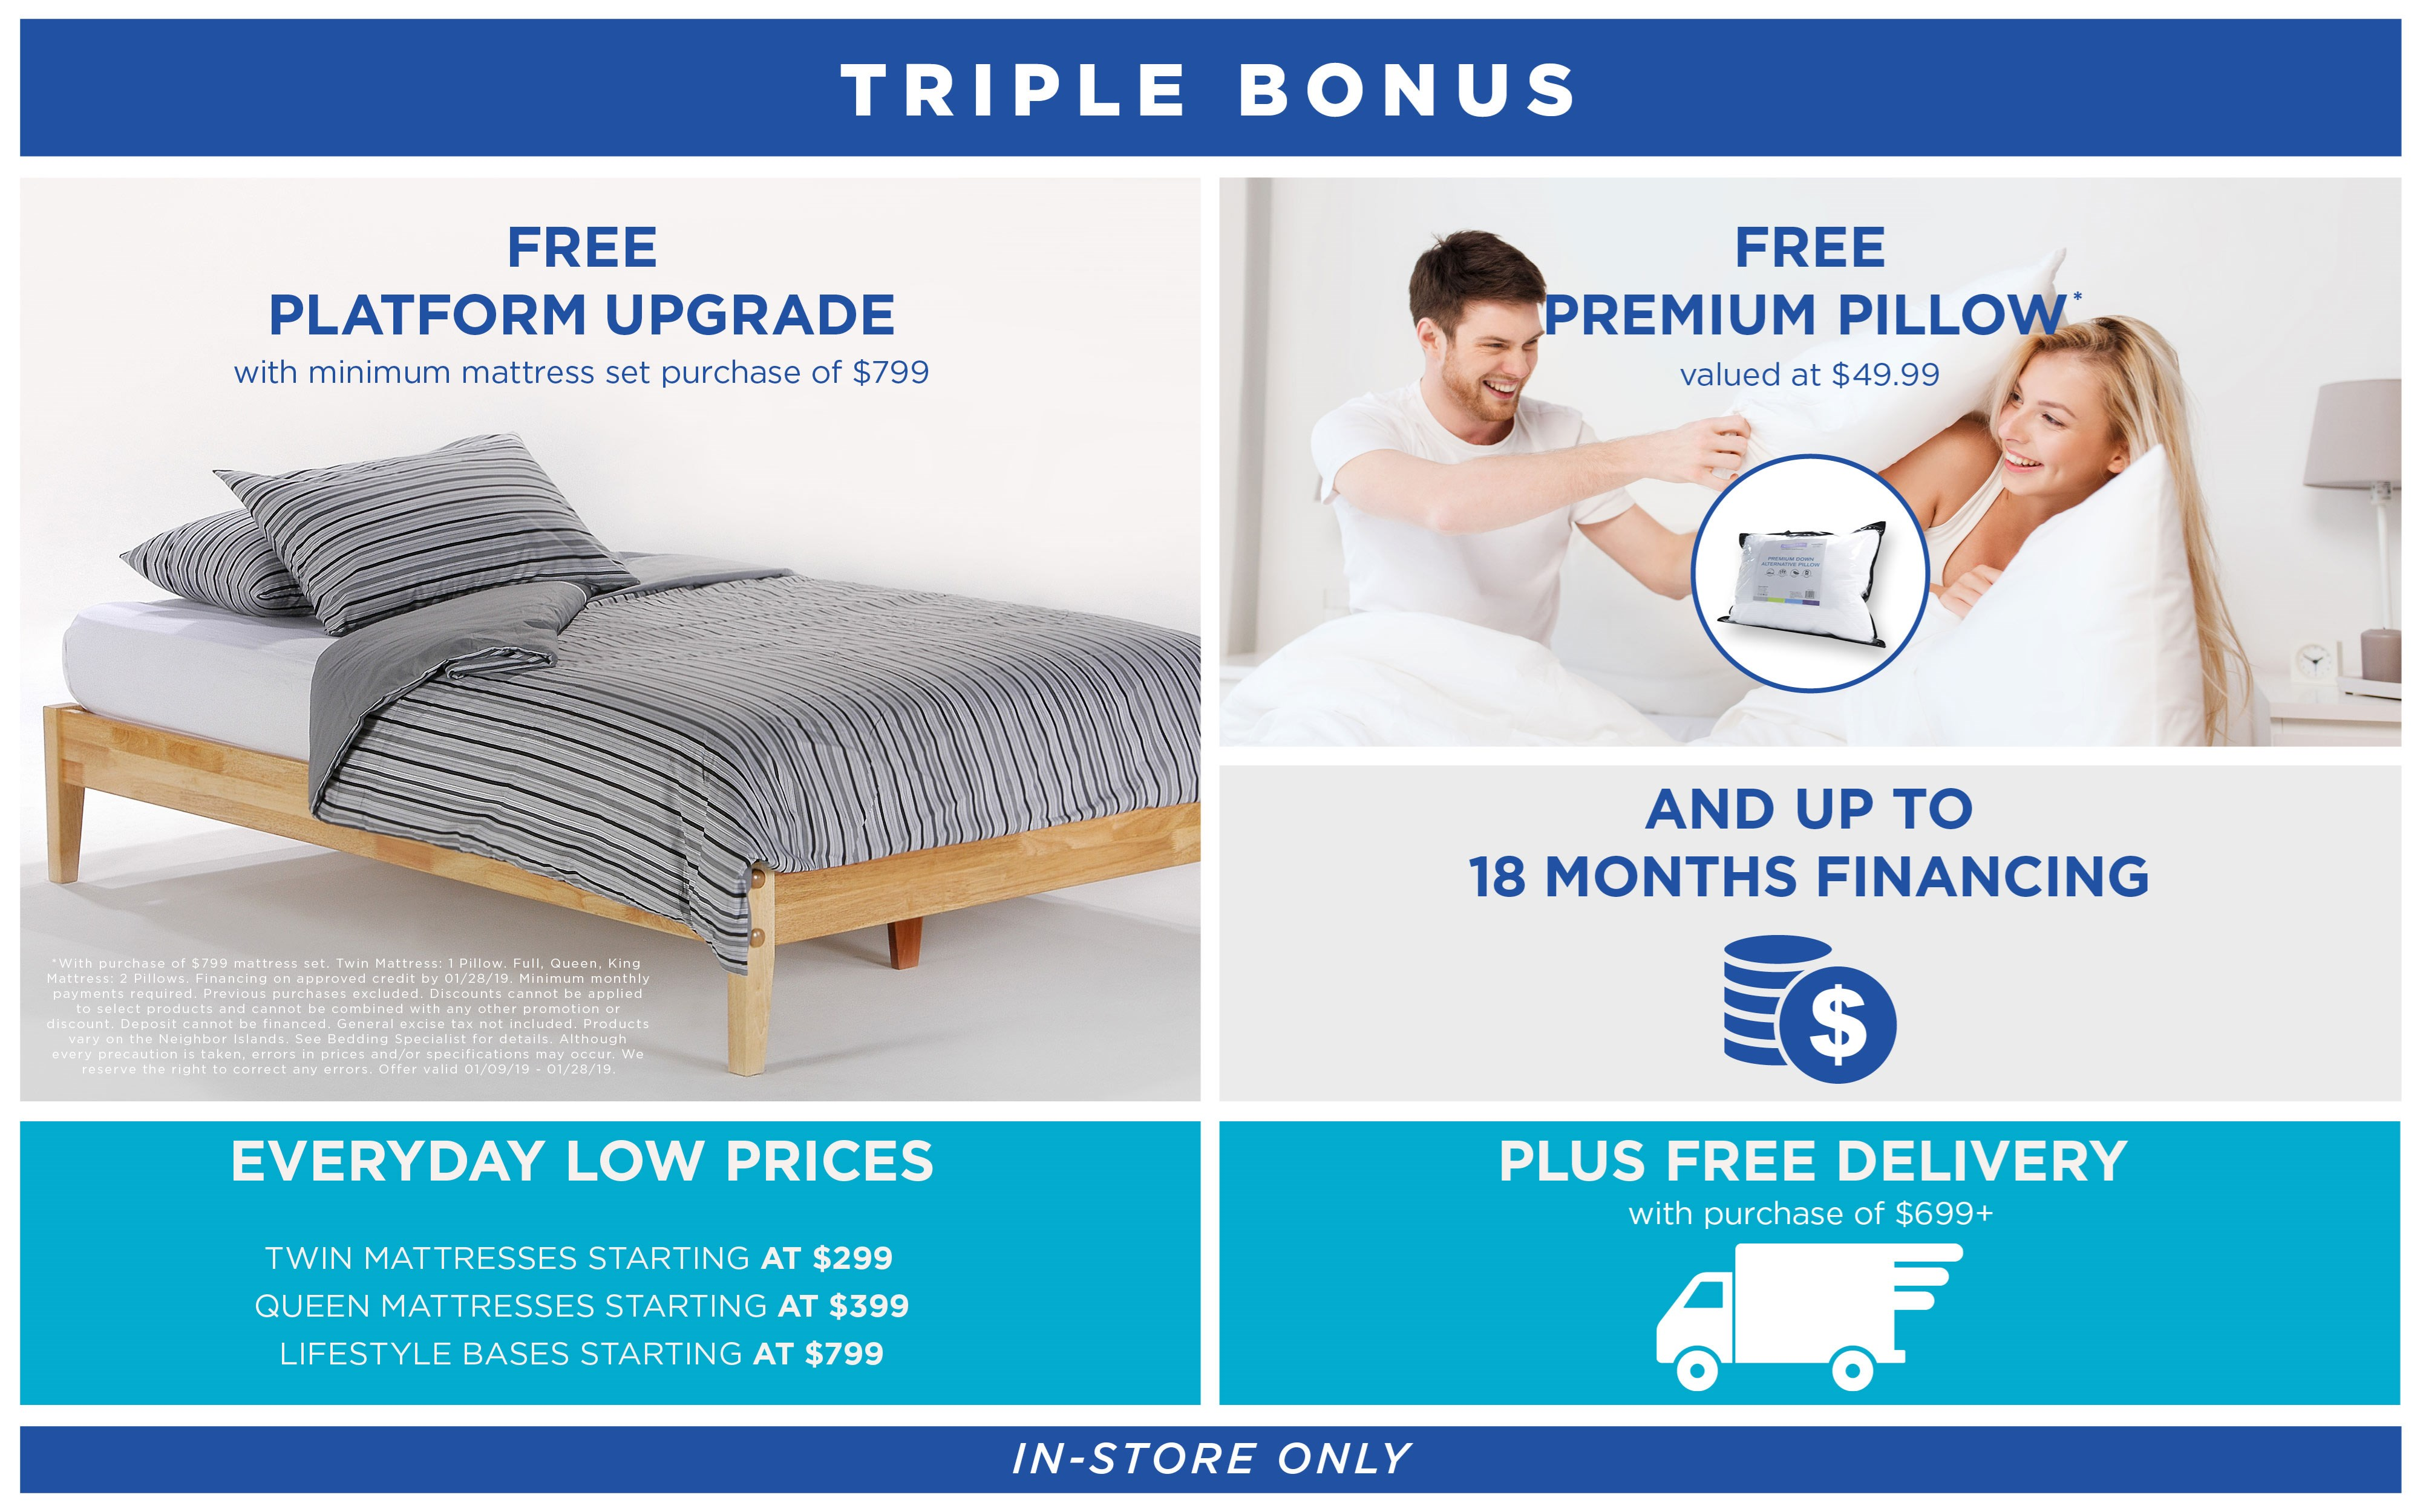 Free platform upgrade, free pillow, and up to 18 months financing; see store for details.